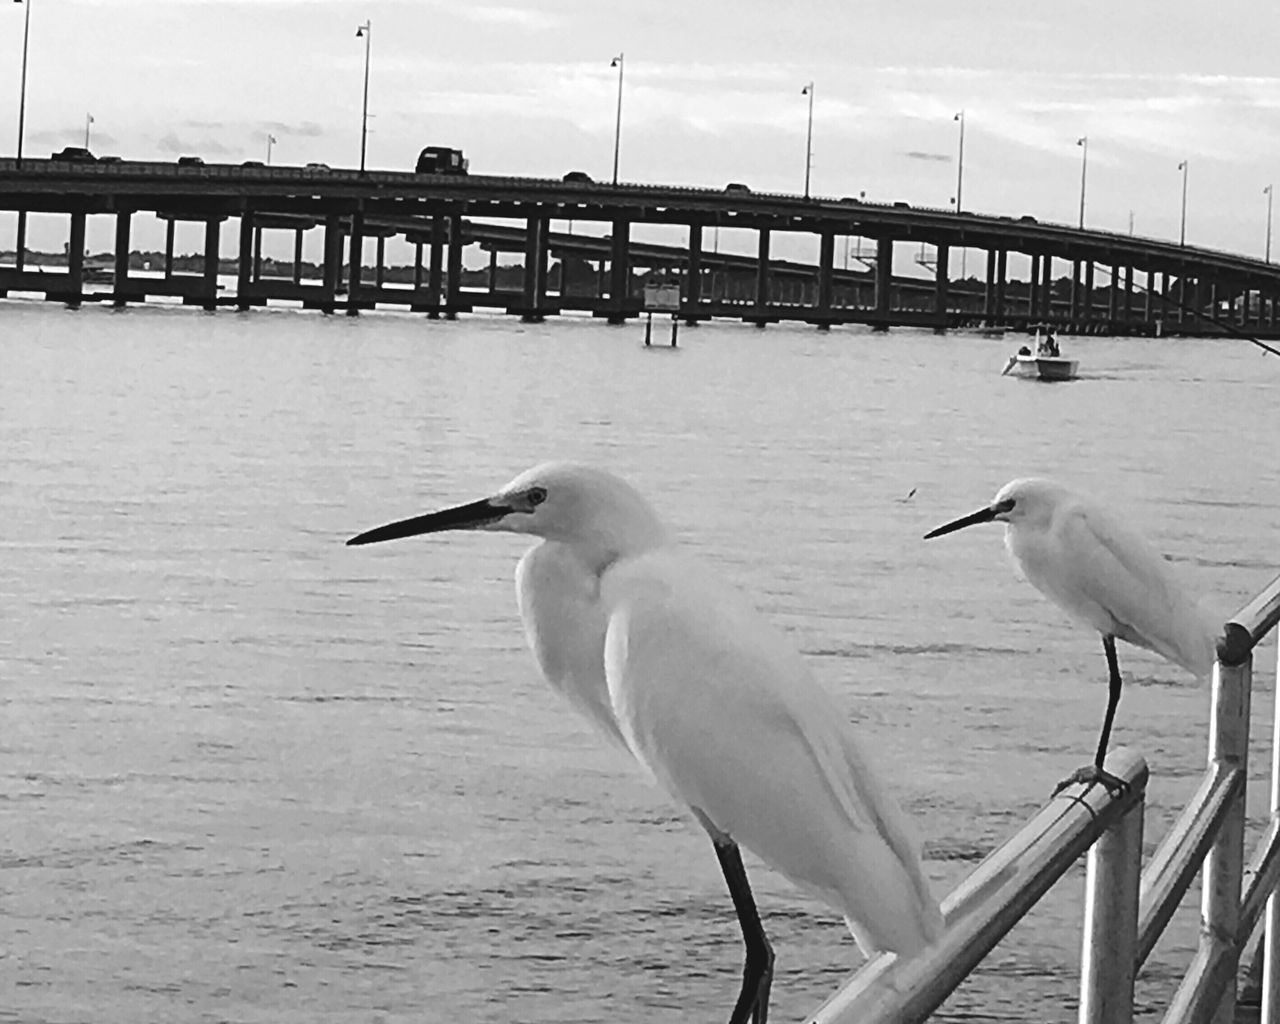 bird, animal themes, animals in the wild, water, sea, animal wildlife, nature, sky, day, railing, outdoors, cloud - sky, perching, seagull, beauty in nature, no people, beak, horizon over water